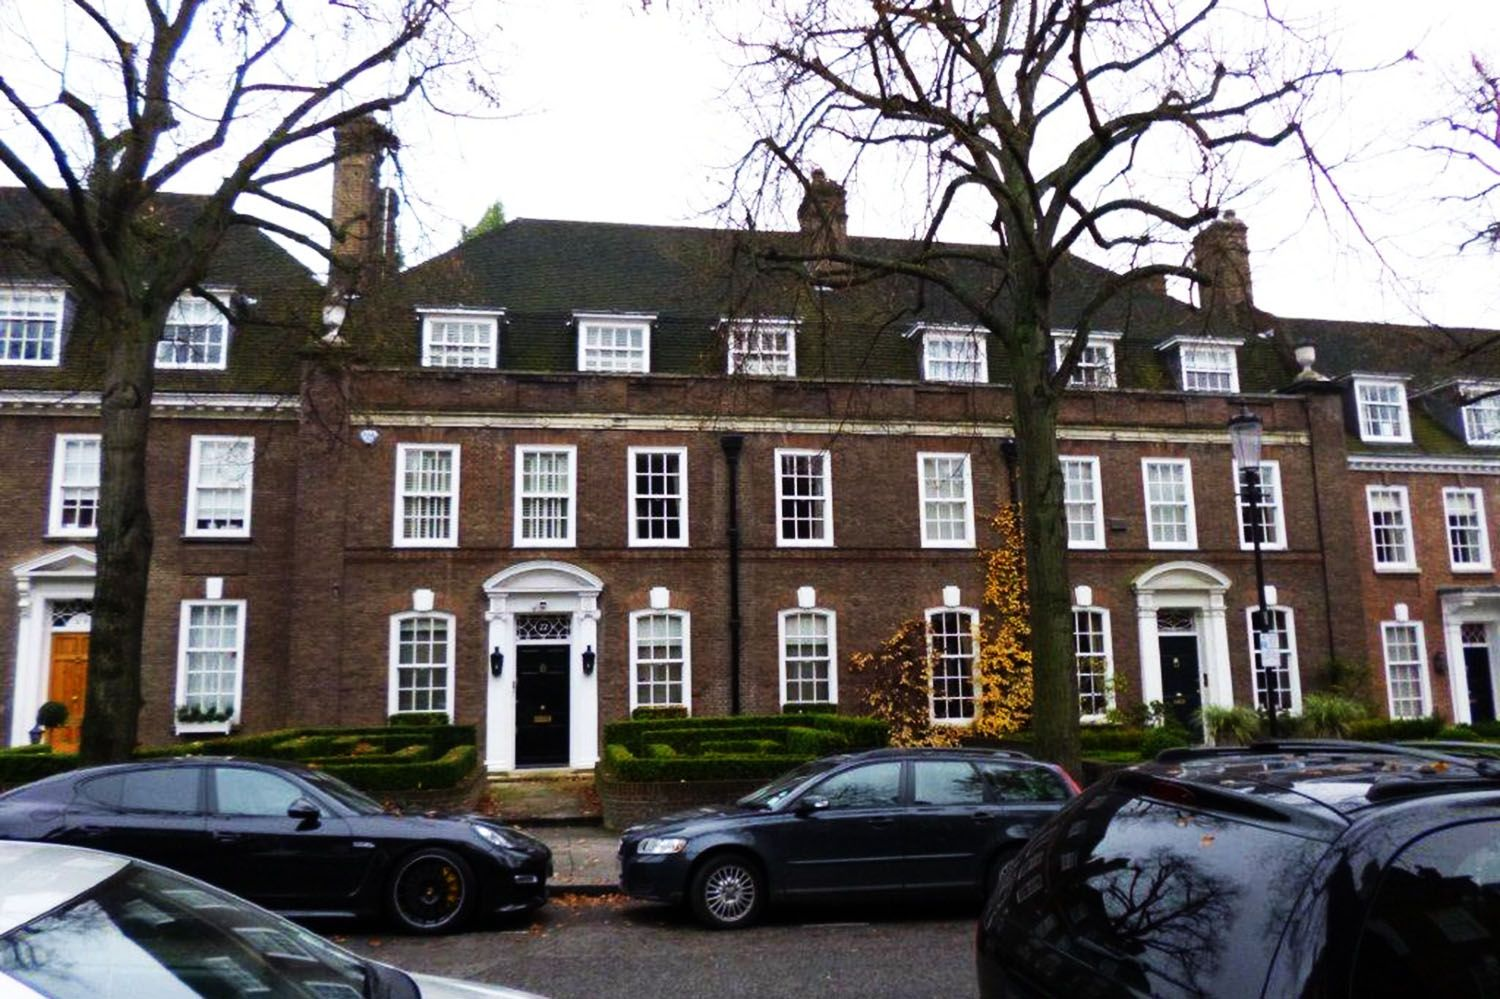 Ilchester Place - Holland Park, London designed by SAY Architects Ltd 2013